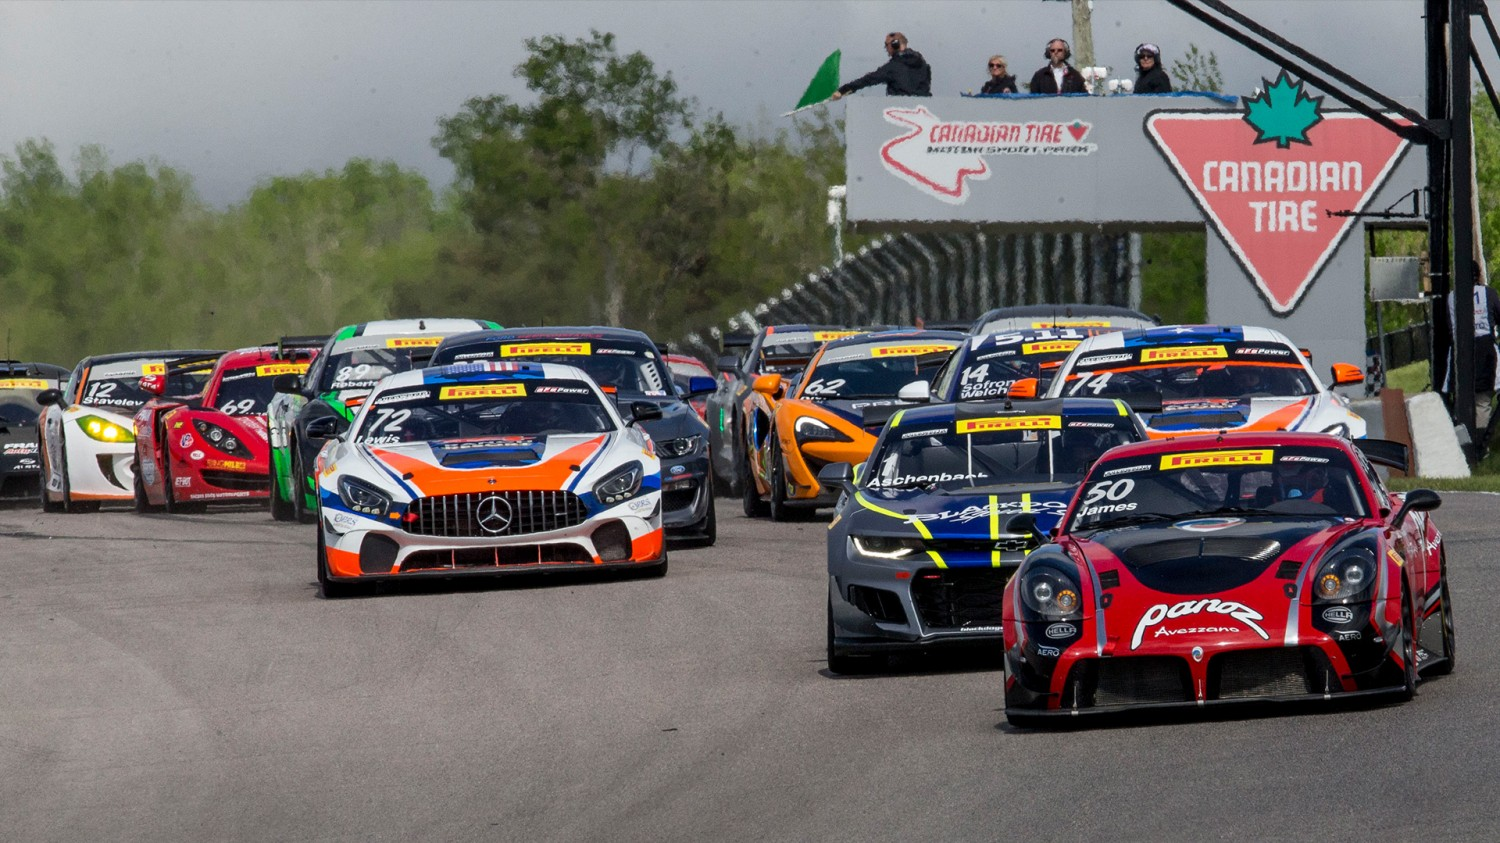 Thirty-one Pirelli GT4 America Sprint, SprintX Entries Set to do Battle at Canadian Tire Motorsport Park